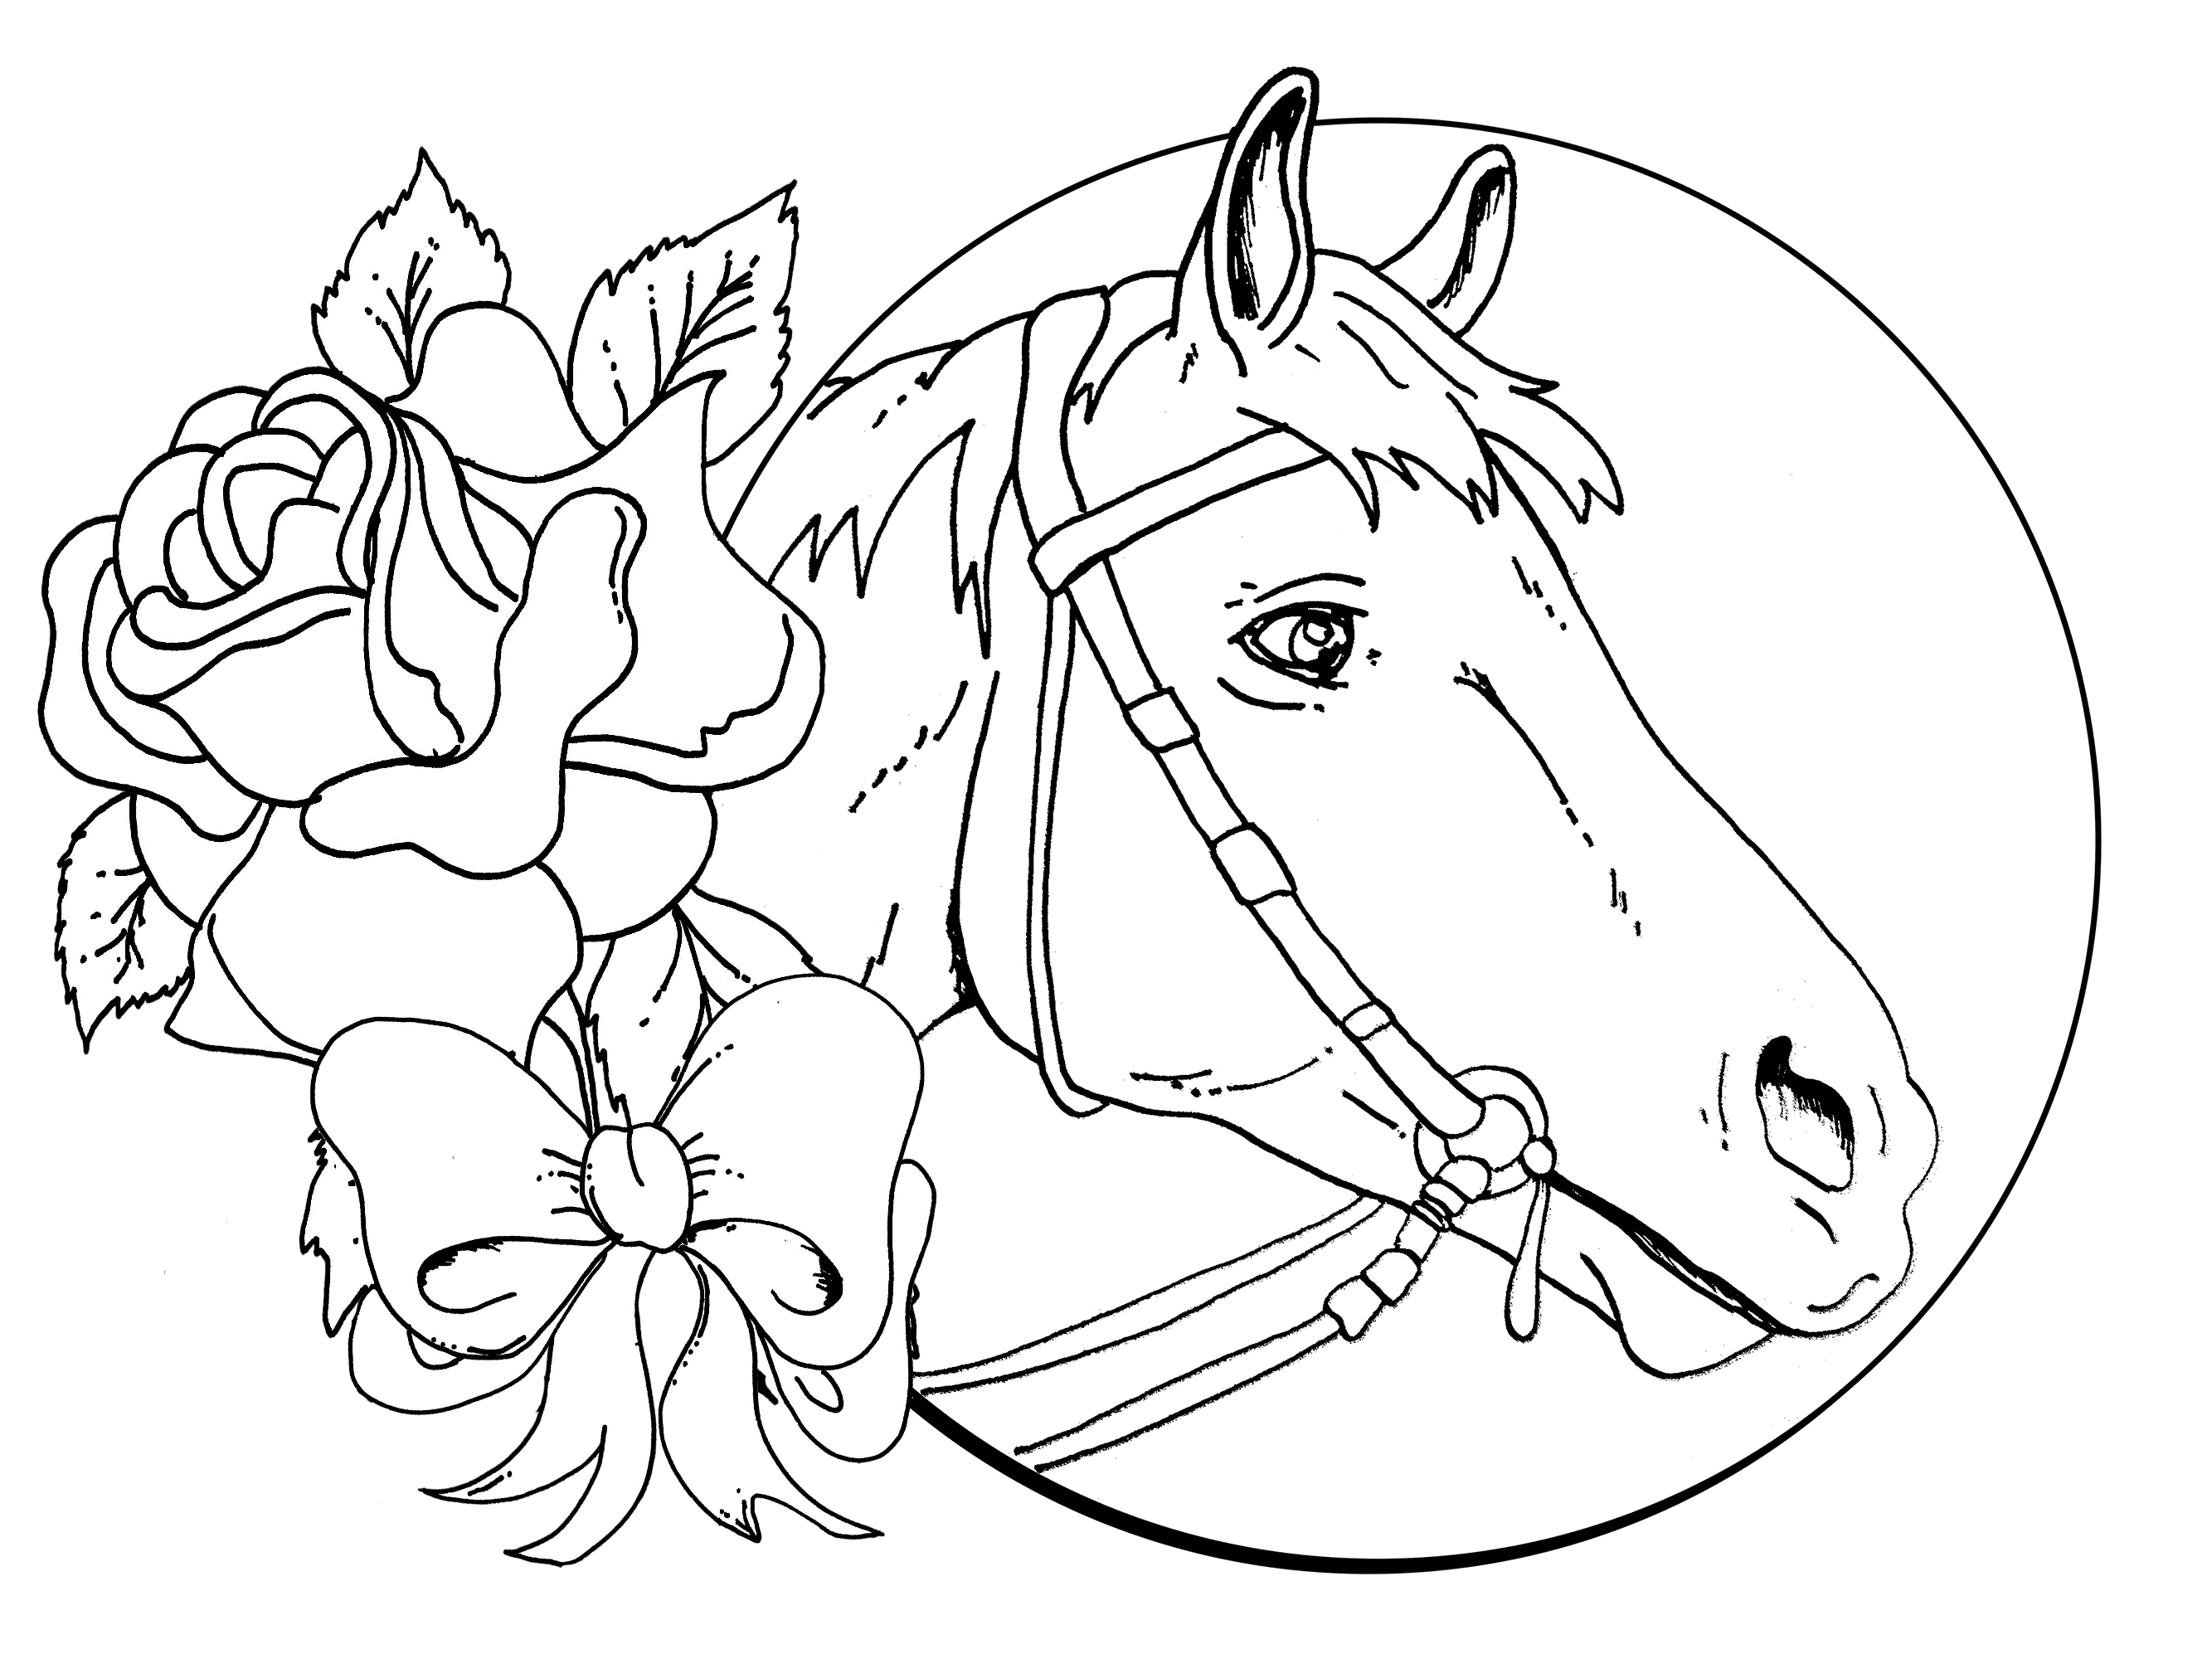 coloring pages for girls dr odd - Coloring Pages To Print For Girls